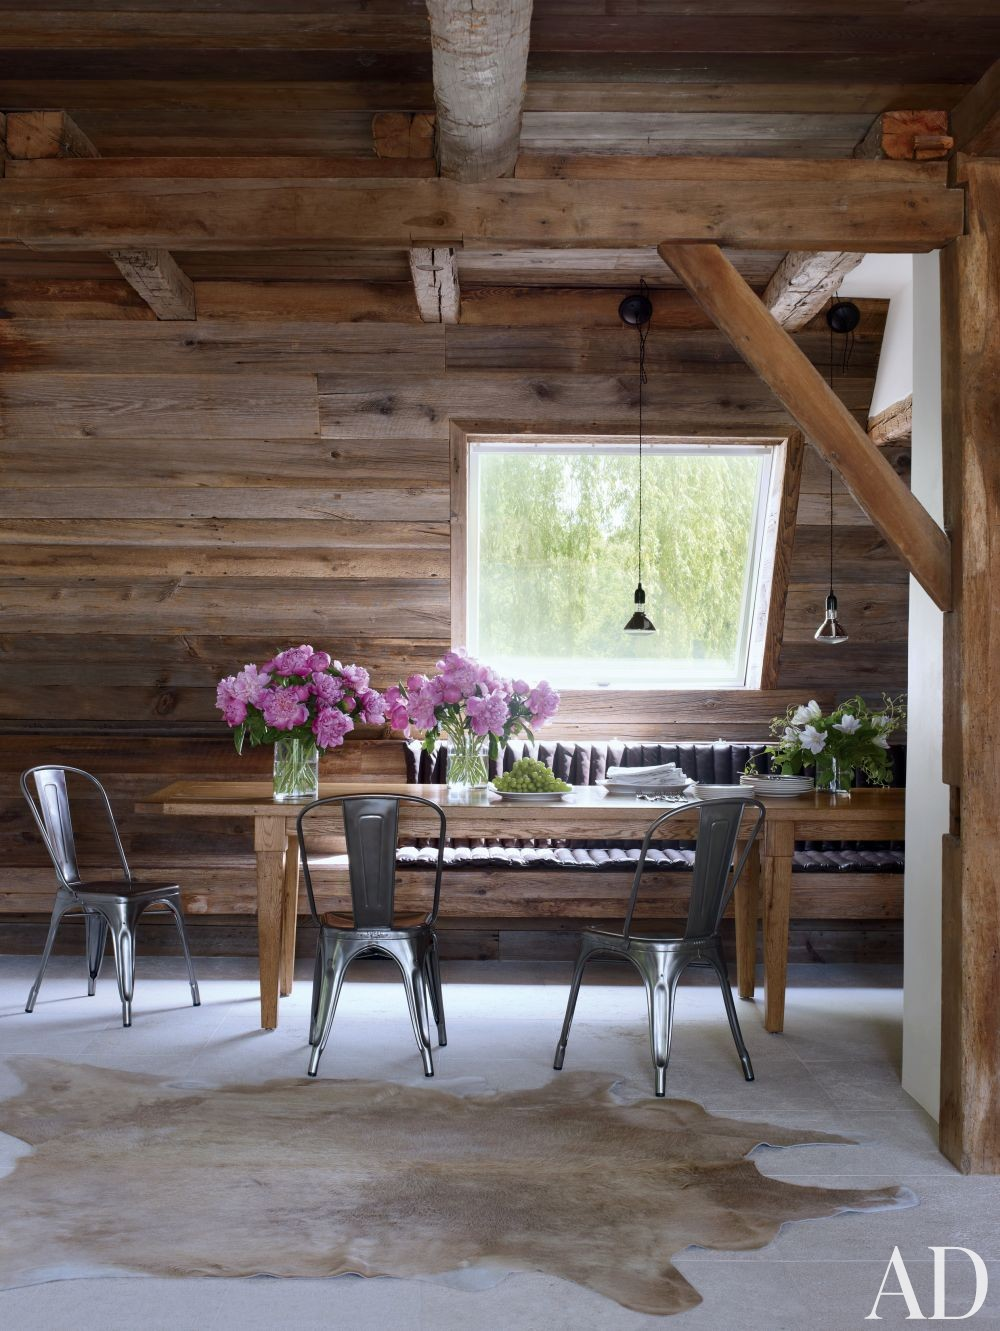 Rustic Living Room By Studio Sofield By Architectural: Rustic Dining Room By Bonetti/Kozerski Studio By